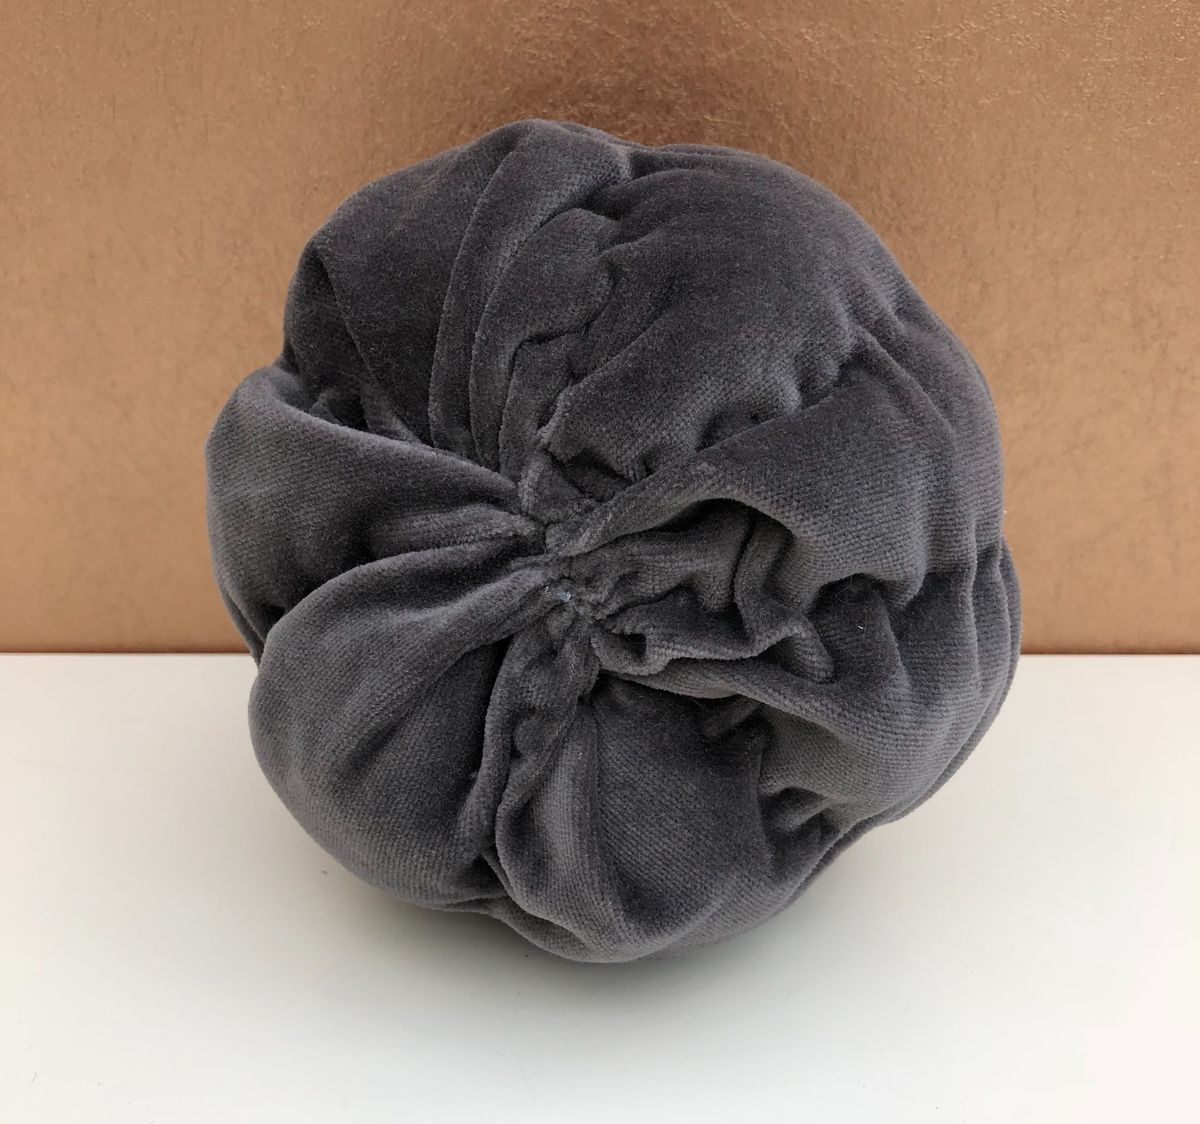 Decorative velvet pumpkin - product images  of